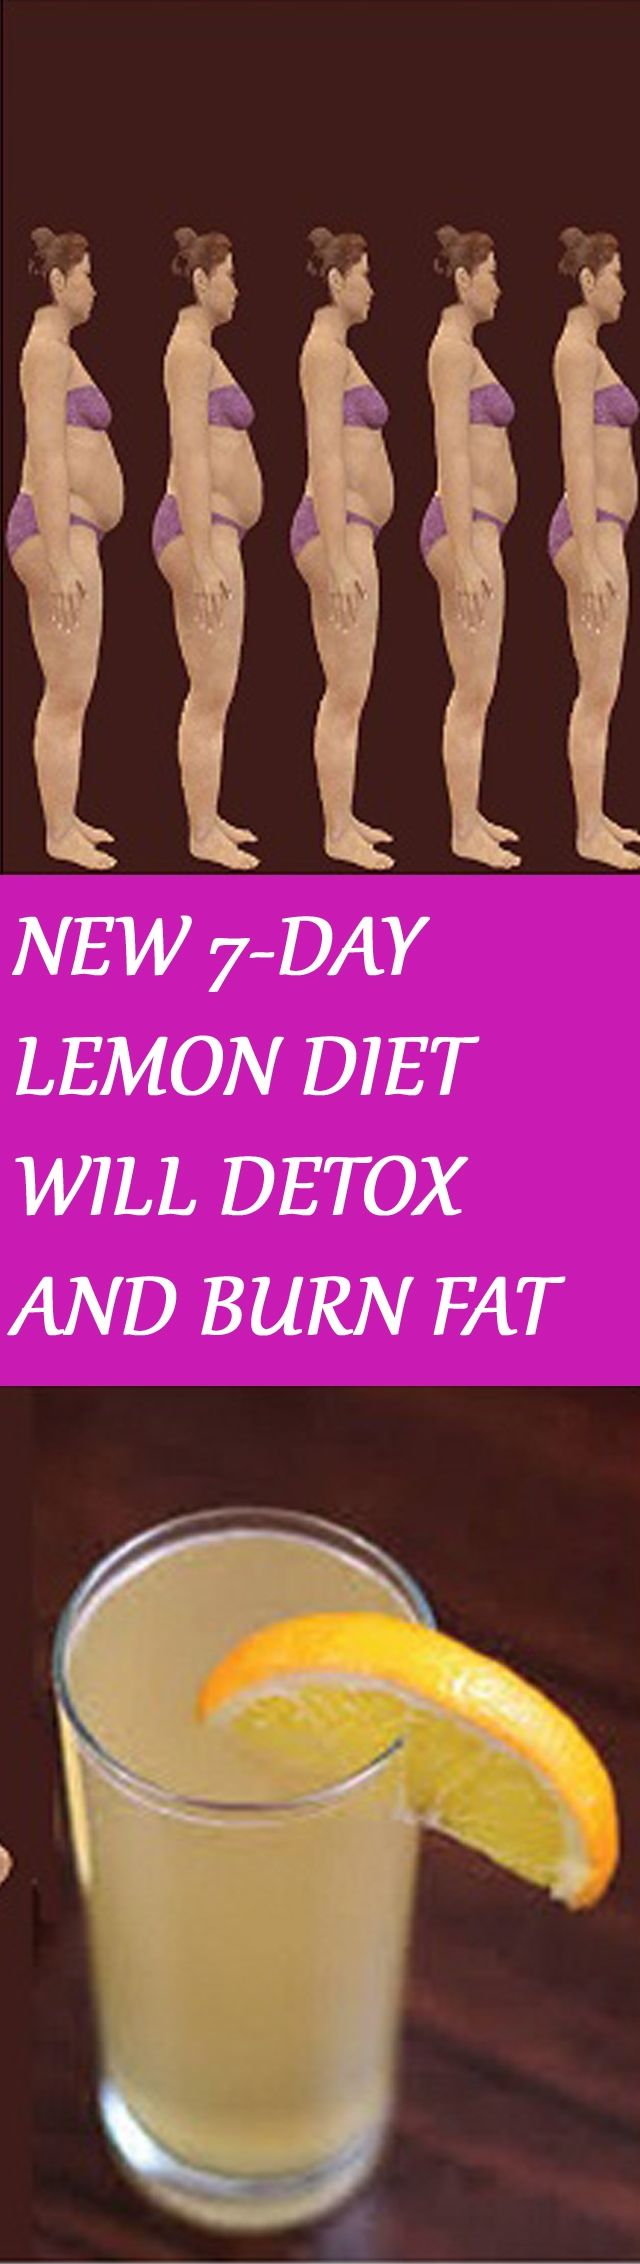 NEW 7-DAY LEMON DIET WILL DETOX AND BURN FAT Click the image for more instructions :D #weightlossbeforeandafter